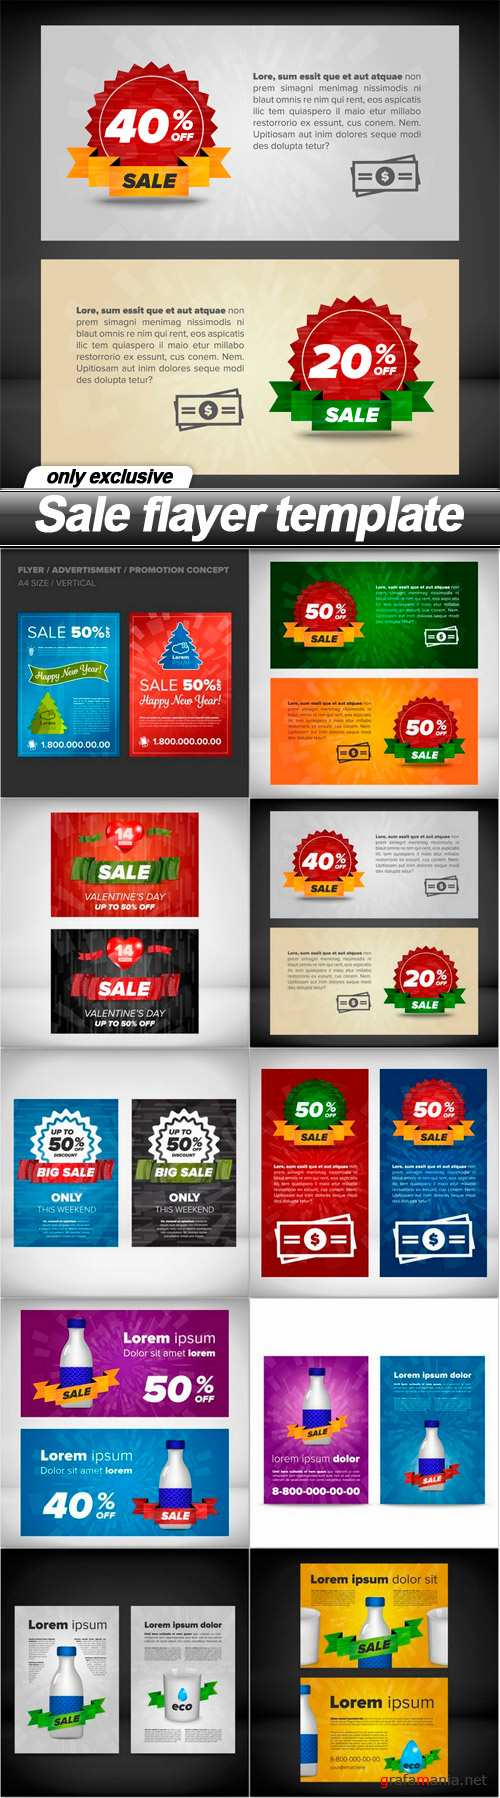 Sale flayer template - 10 EPS